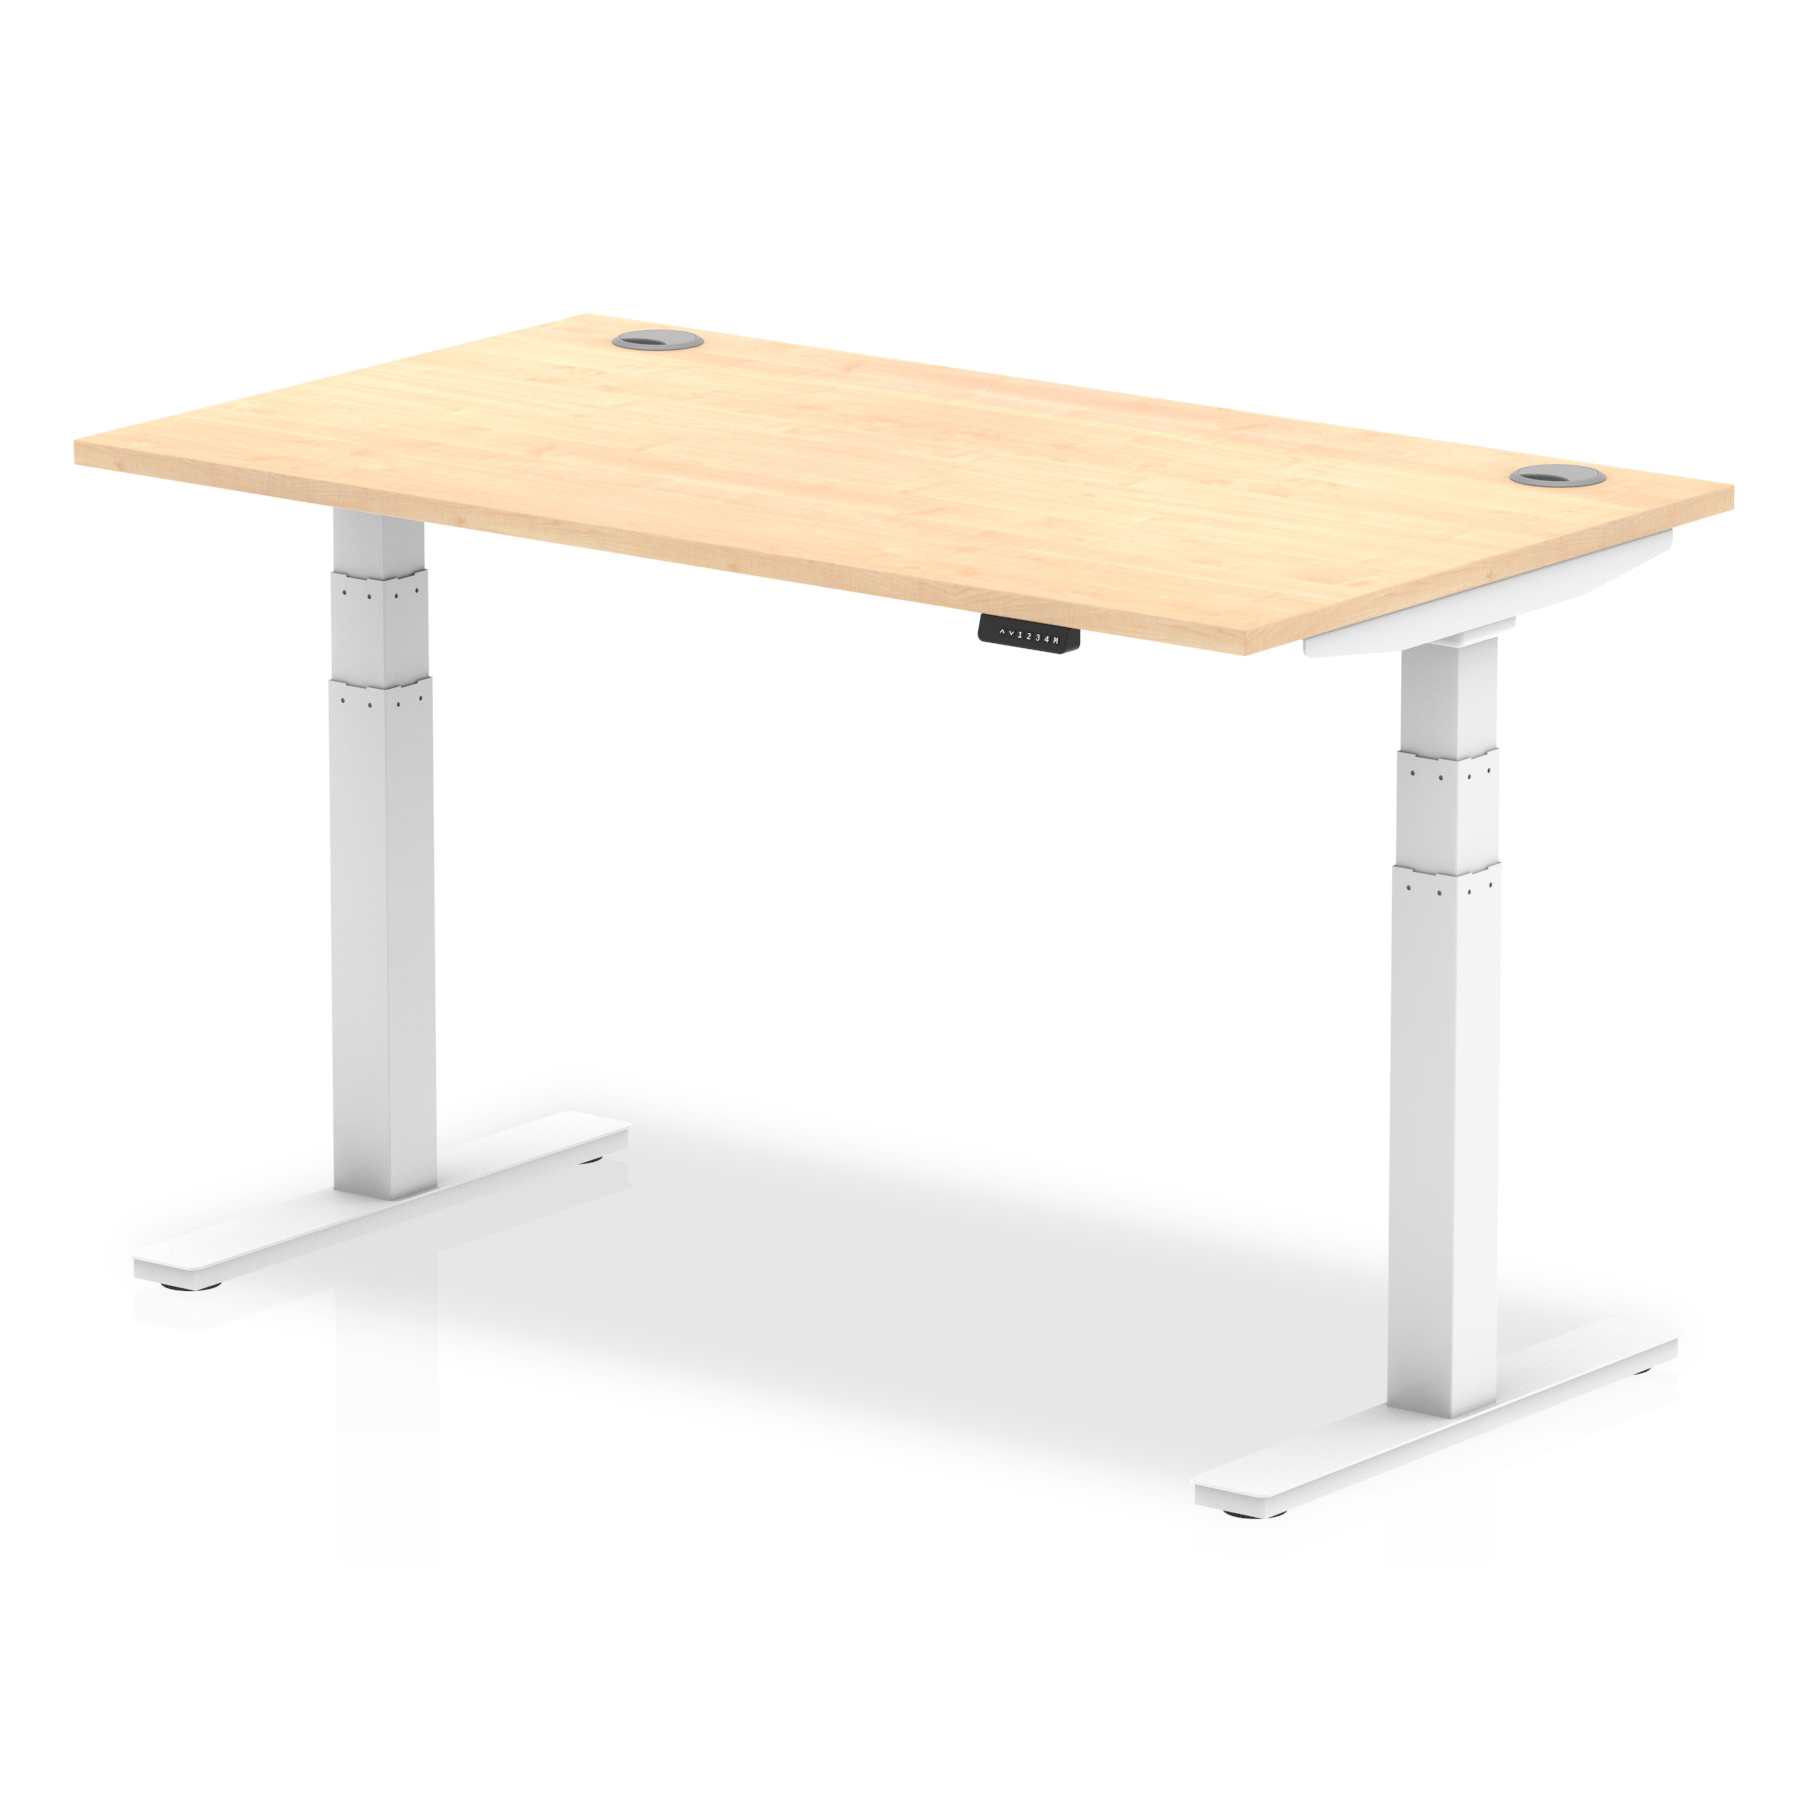 Trexus Sit Stand Desk With Cable Ports White Legs 1400x800mm Maple Ref HA01114